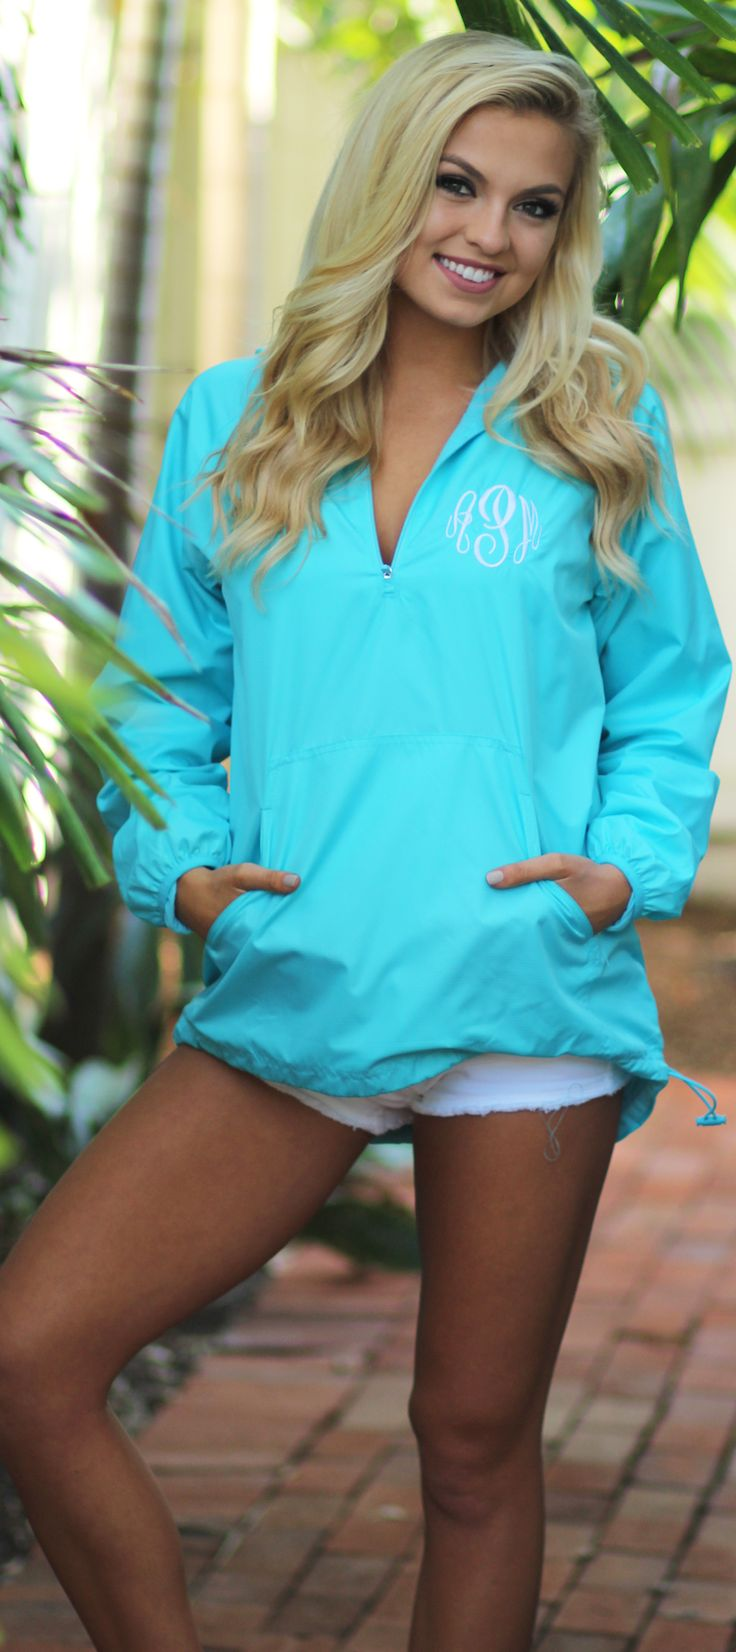 Give a pop of color to a rainy day with this cute Monogrammed Pullover Rain Jacket!